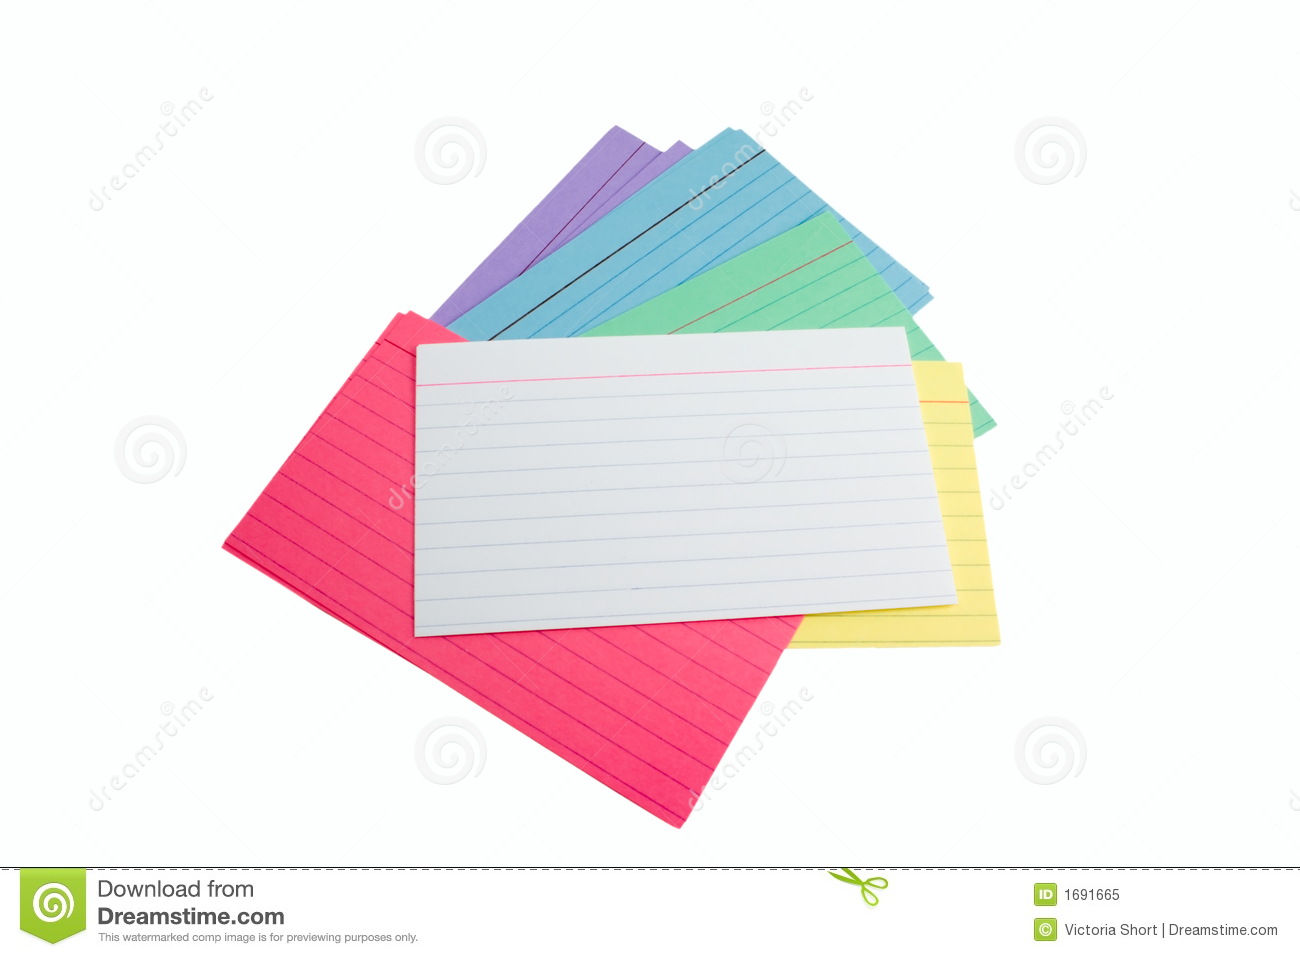 Pile Of Index Cards Royalty Free Stock Photo - Image: 1691665